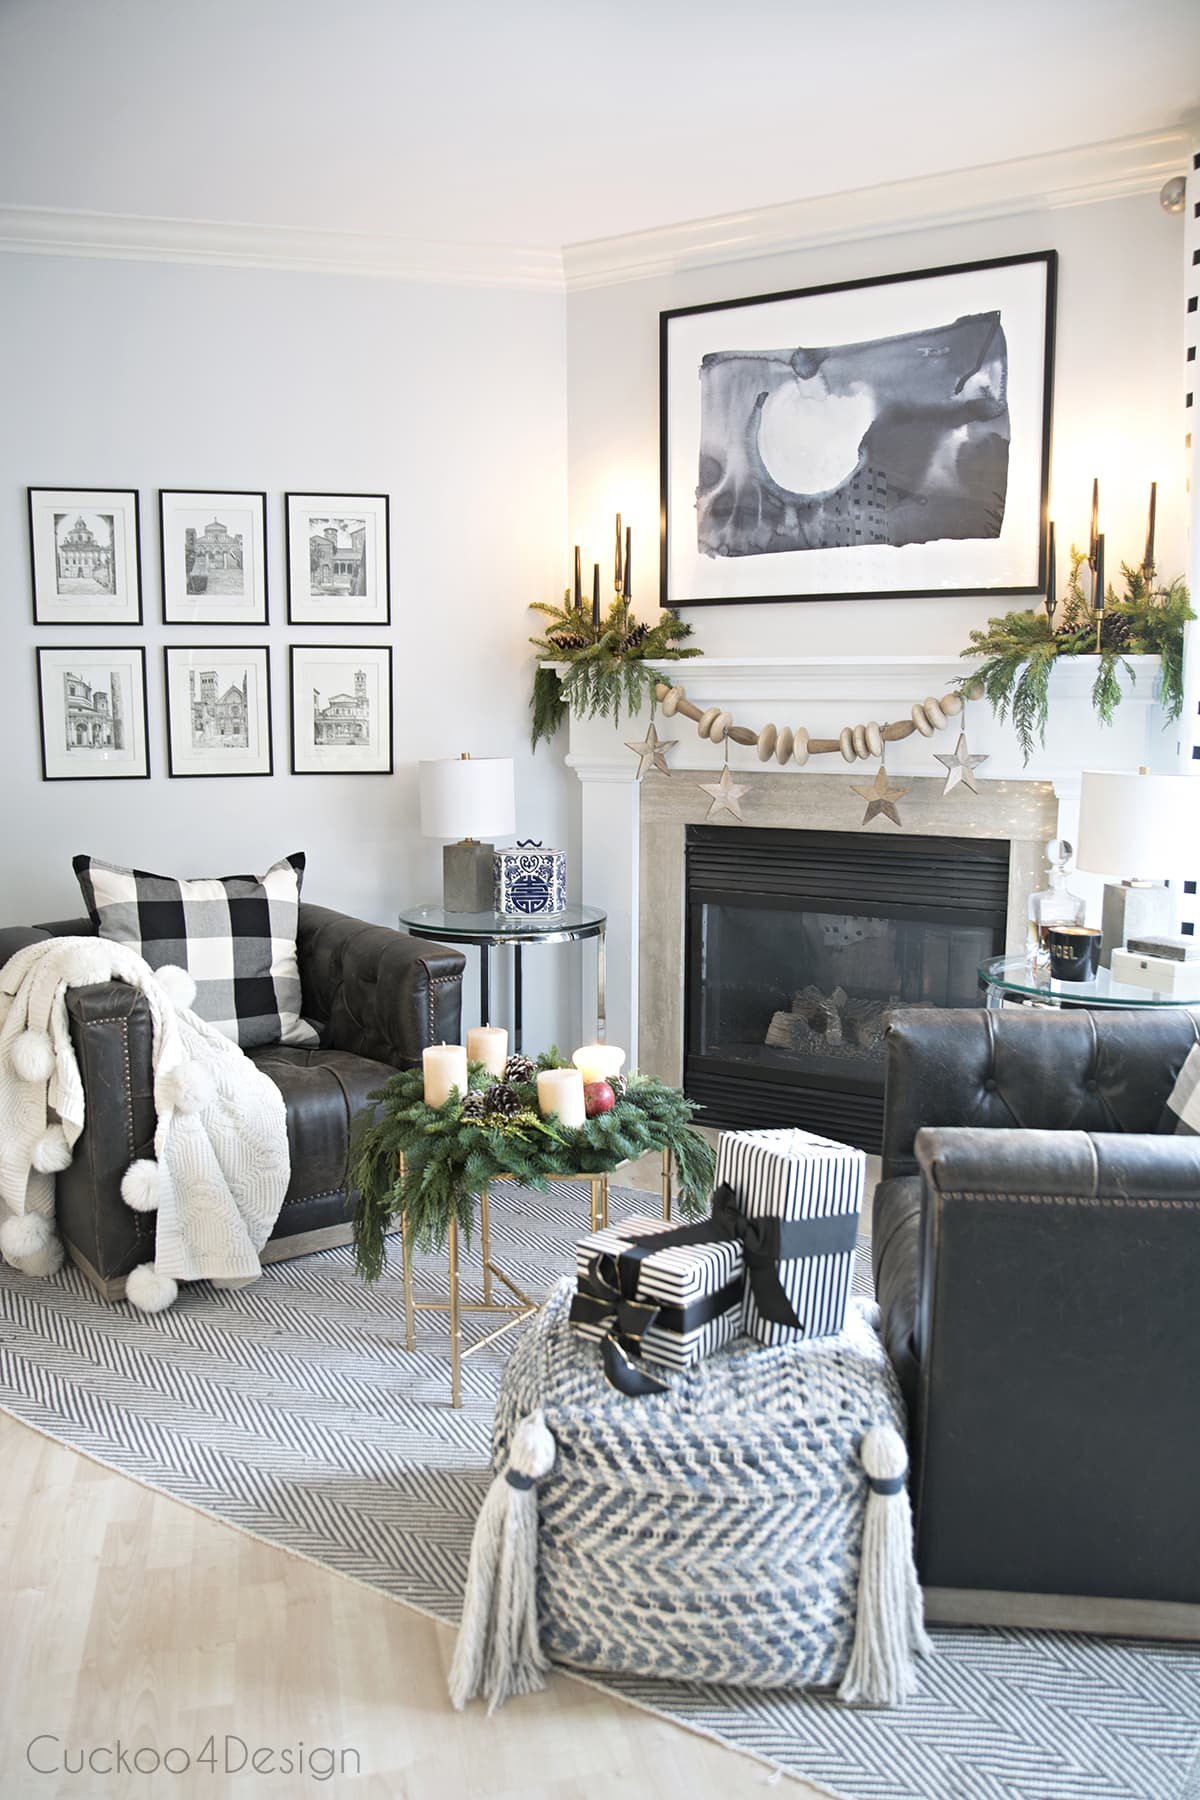 blue, black and white fireplace area with leather swivel chair and natural Christmas decor